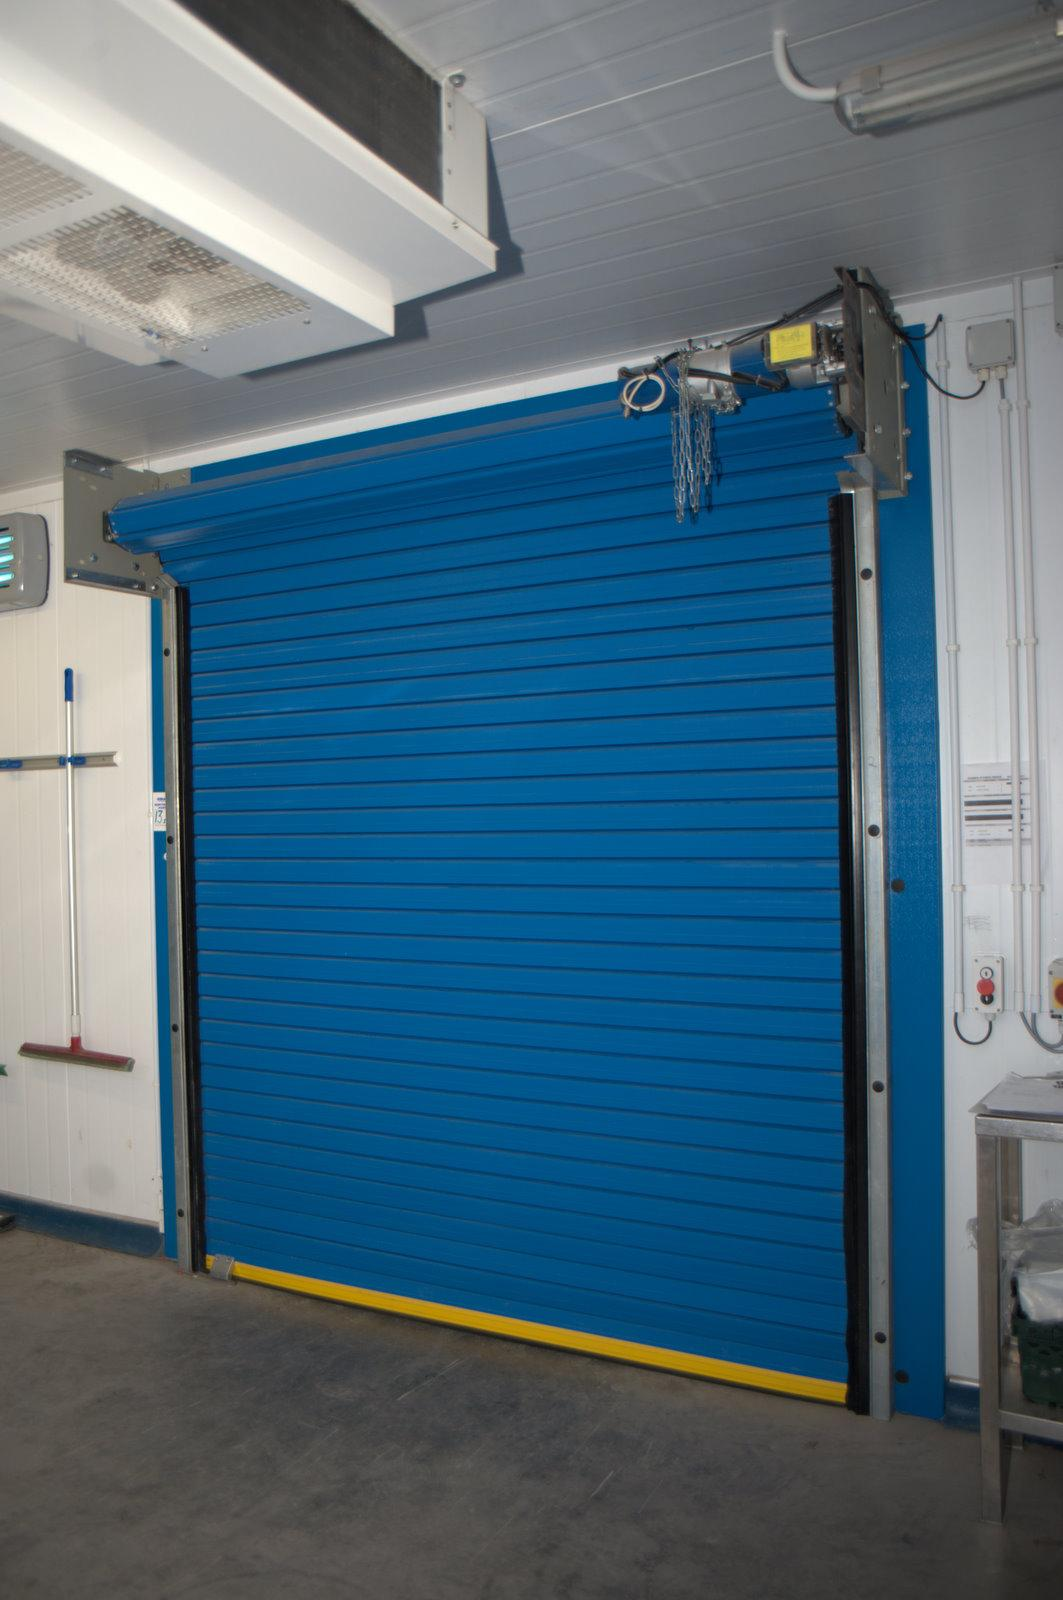 Best Choice Garage Doors  Industrial Door GalleryIndustrial Door Gallery  Best Choice Garage Doors